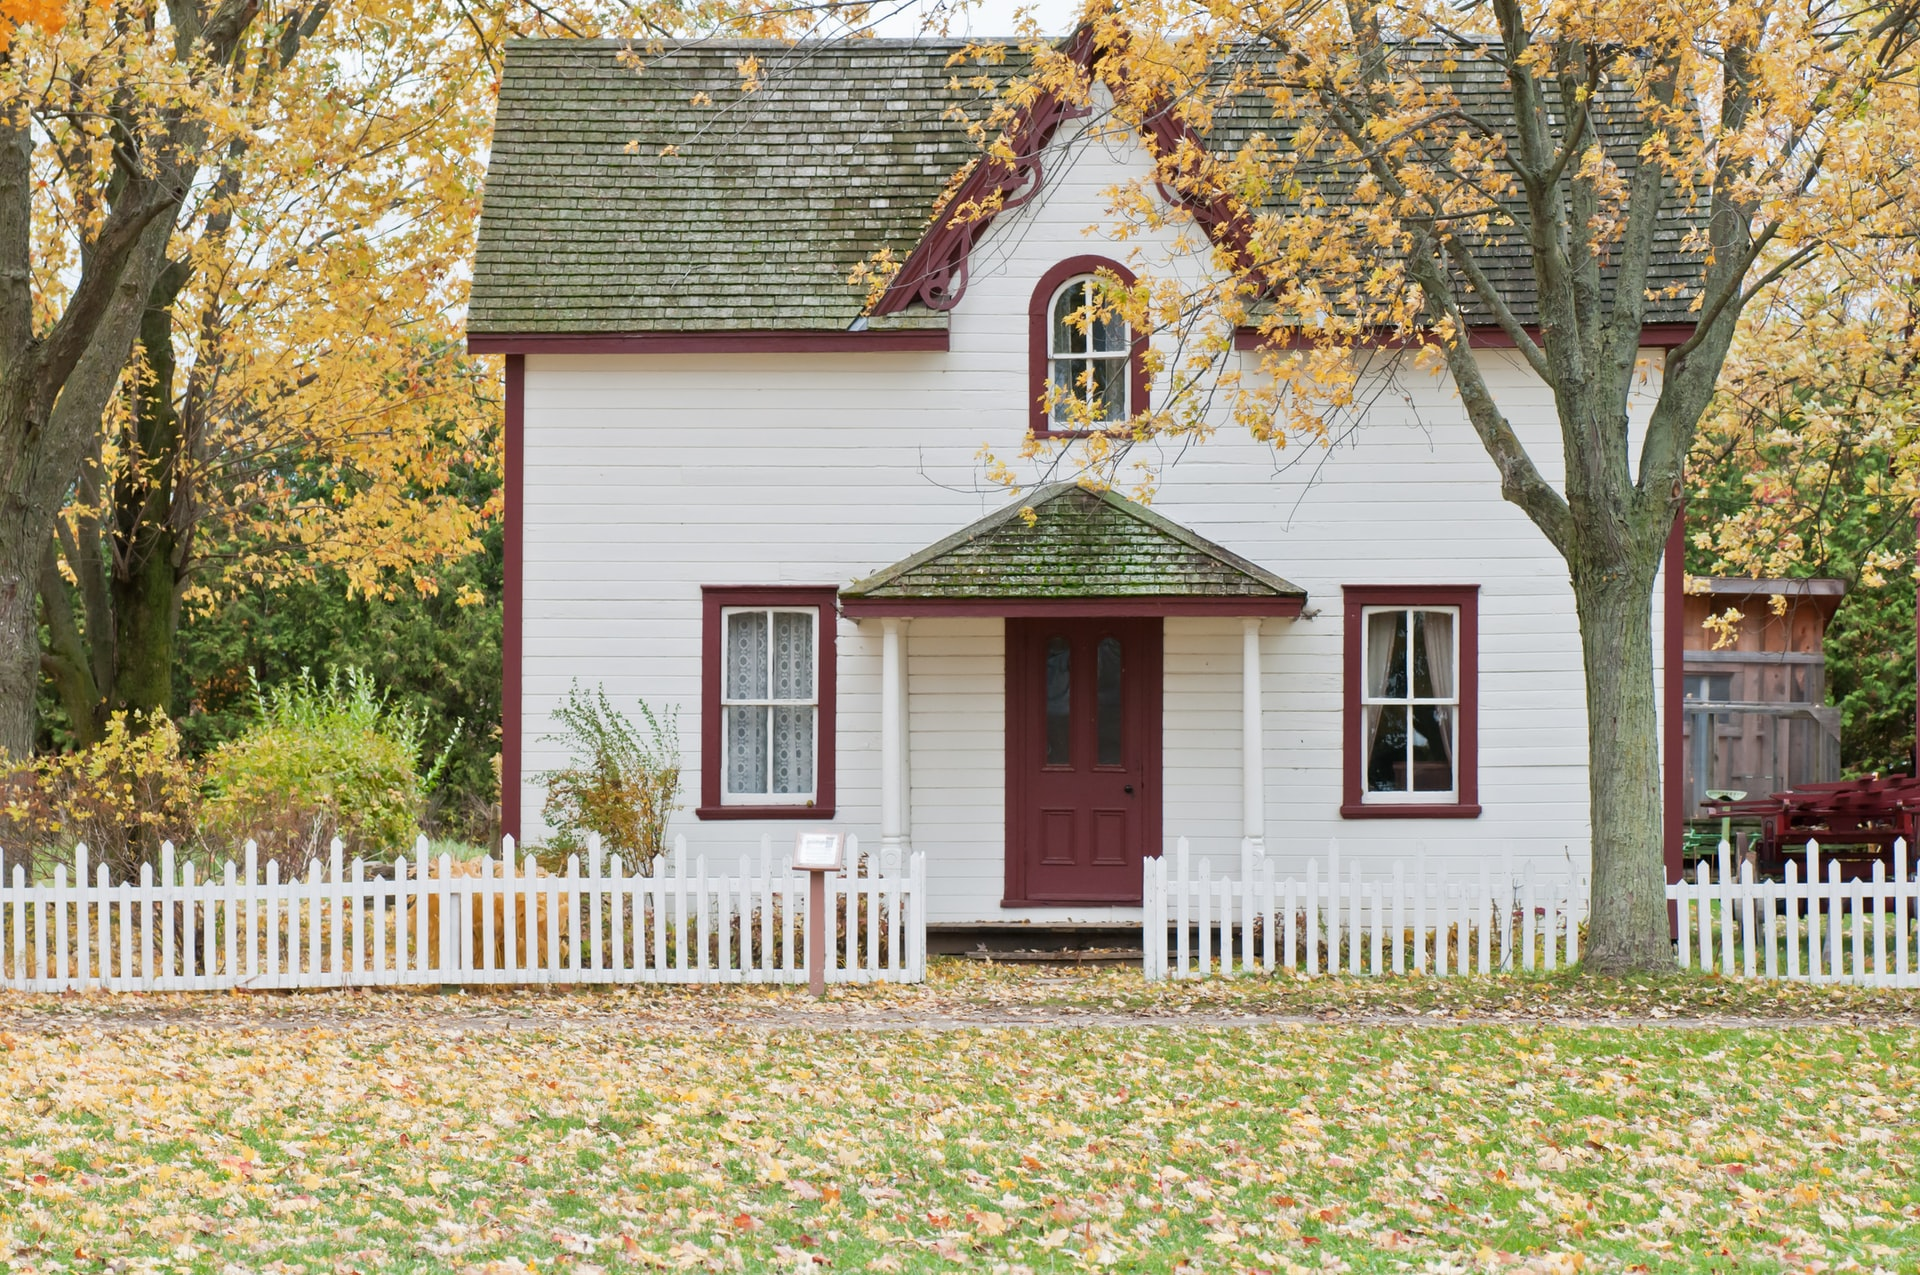 Settling Down After Traveling a Lot: Things to Consider When Buying a Home